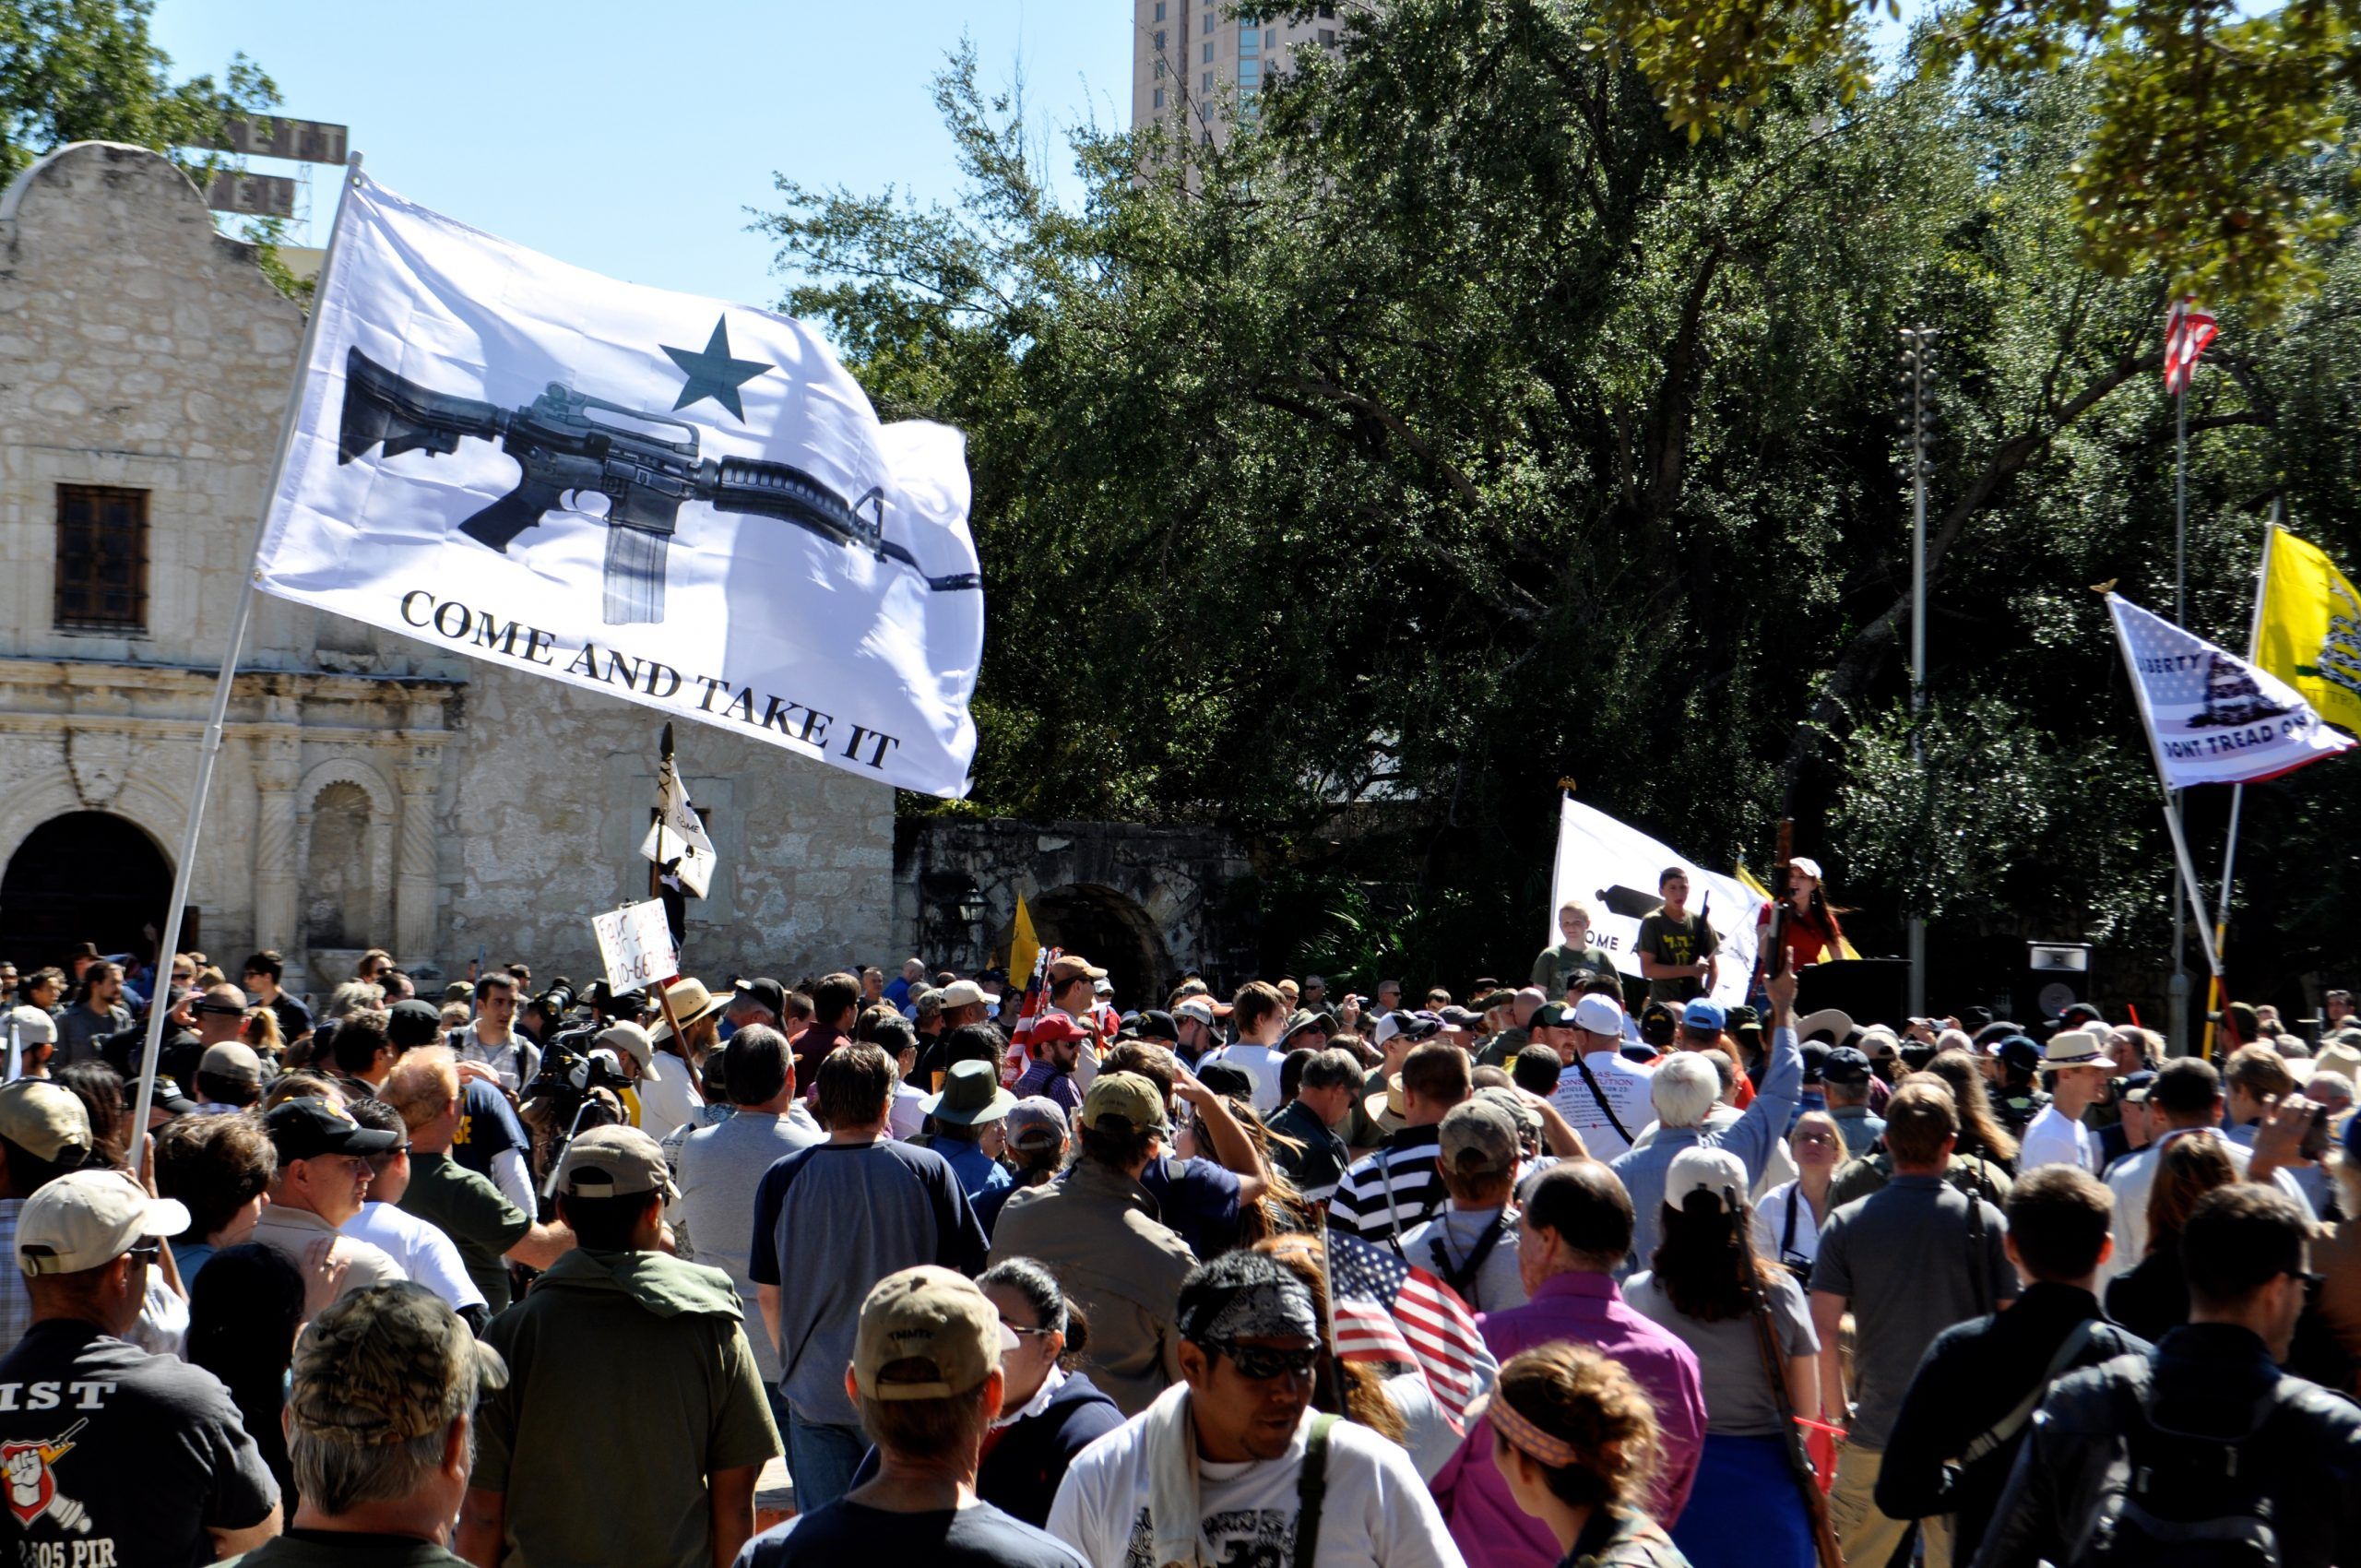 Alamo Plaza packed with people, guns, flags and slogans. Photo by Iris Dimmick.